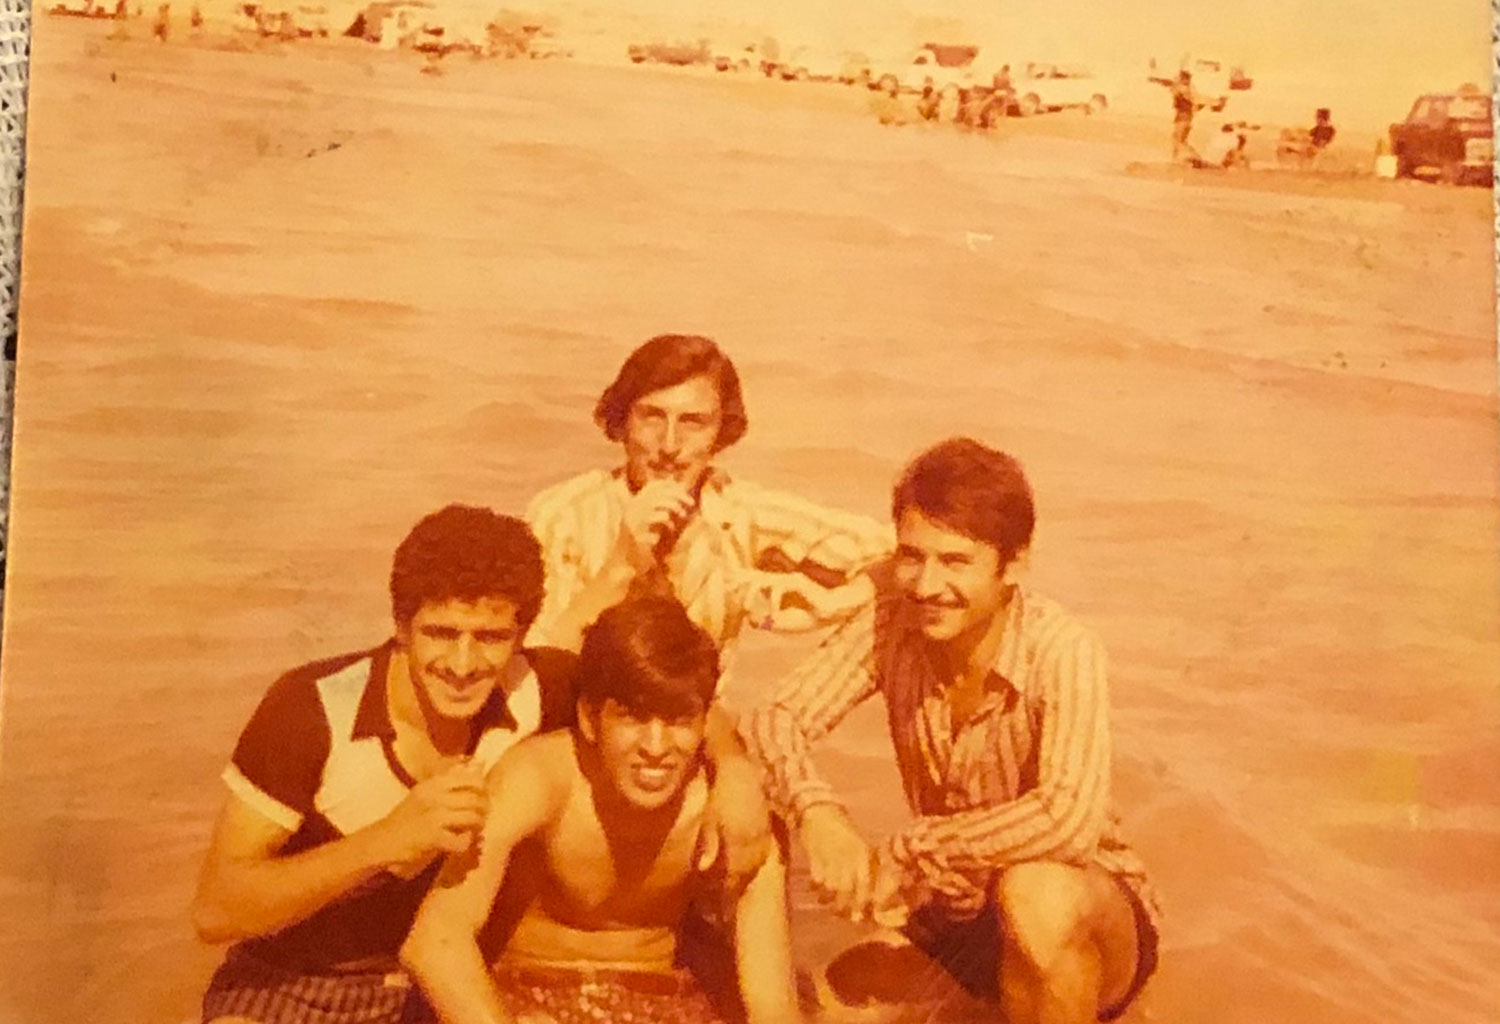 An image of four men posing during trip to Al Habbaniyah Lake in the 1970s as submitted to the Iraq Photo Archive.